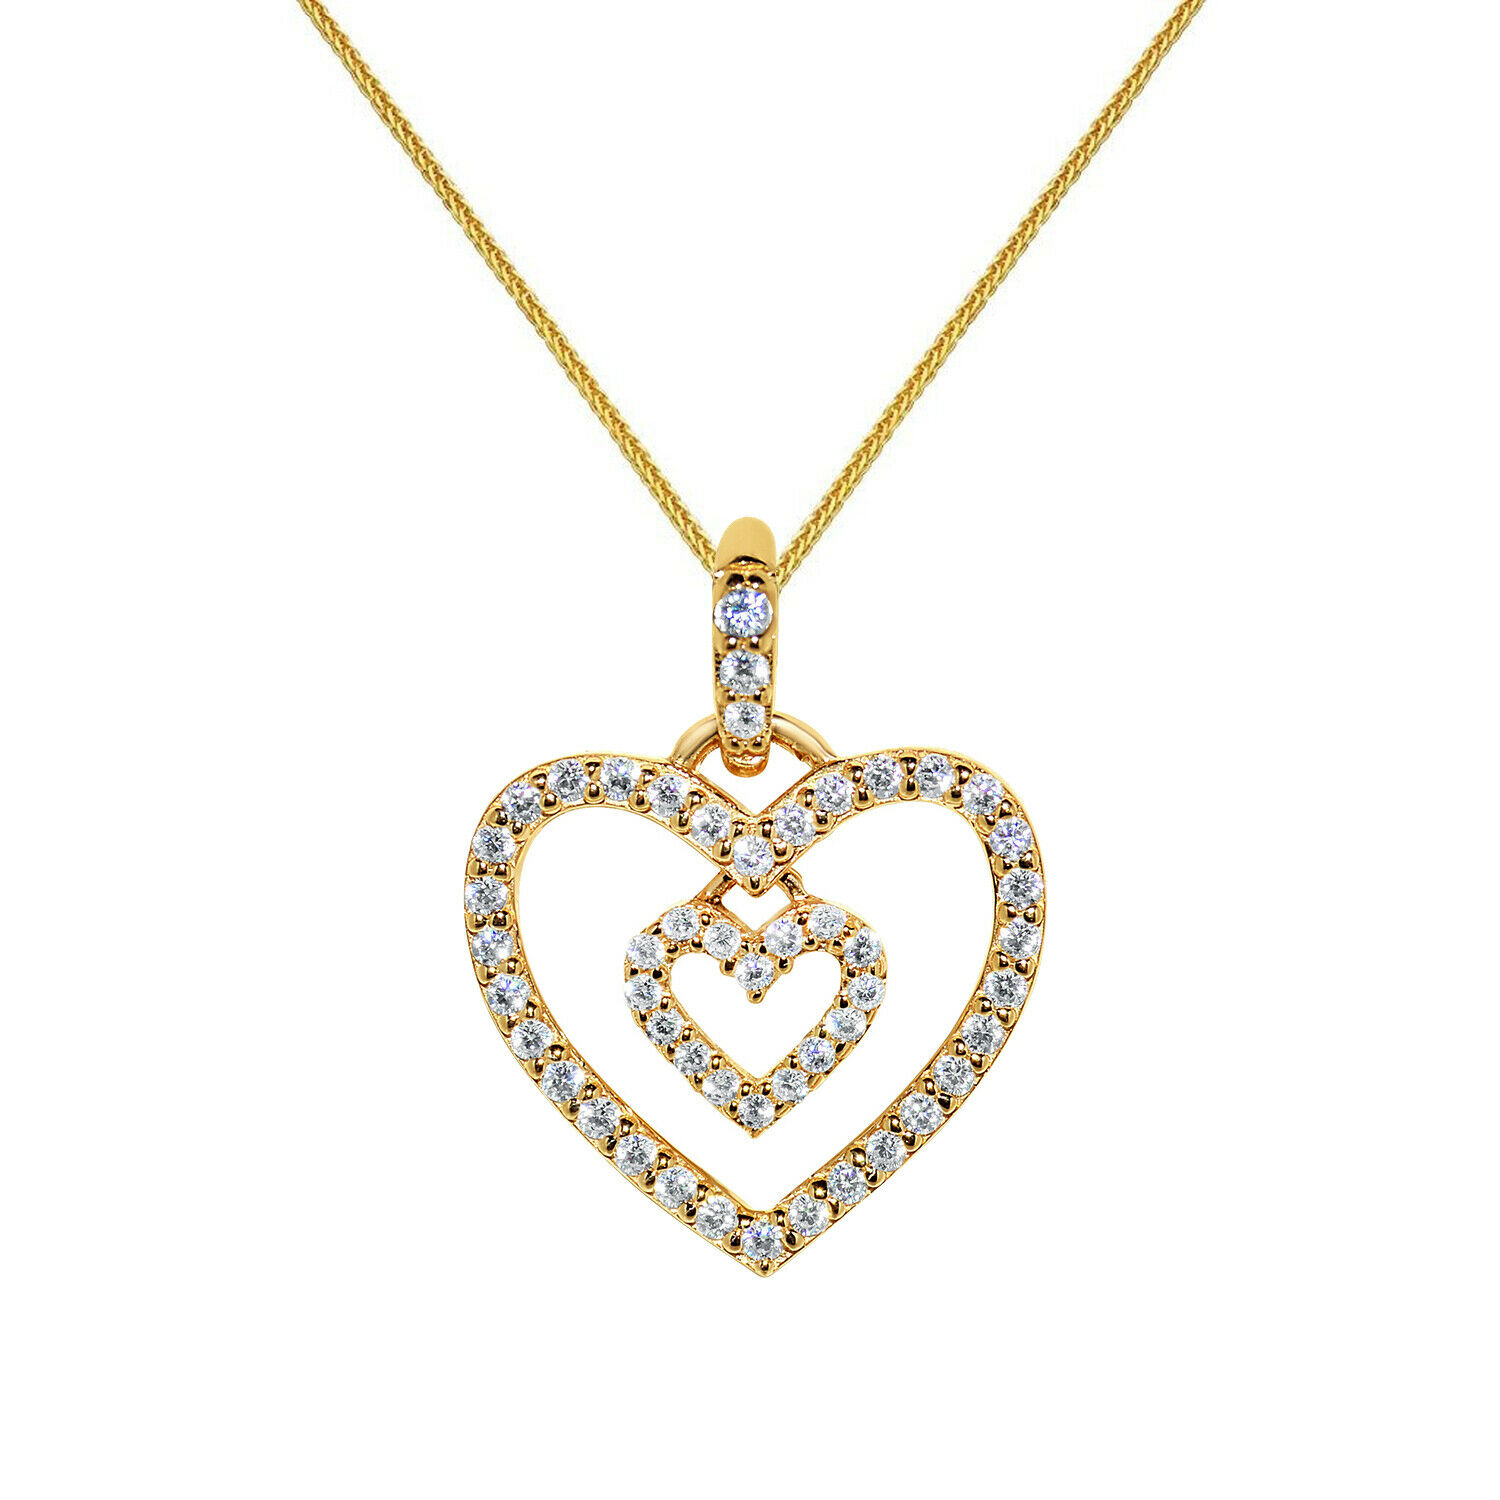 14k Yellow gold Cubic Zirconia Double Heart Pendant with gold Wheat Chain